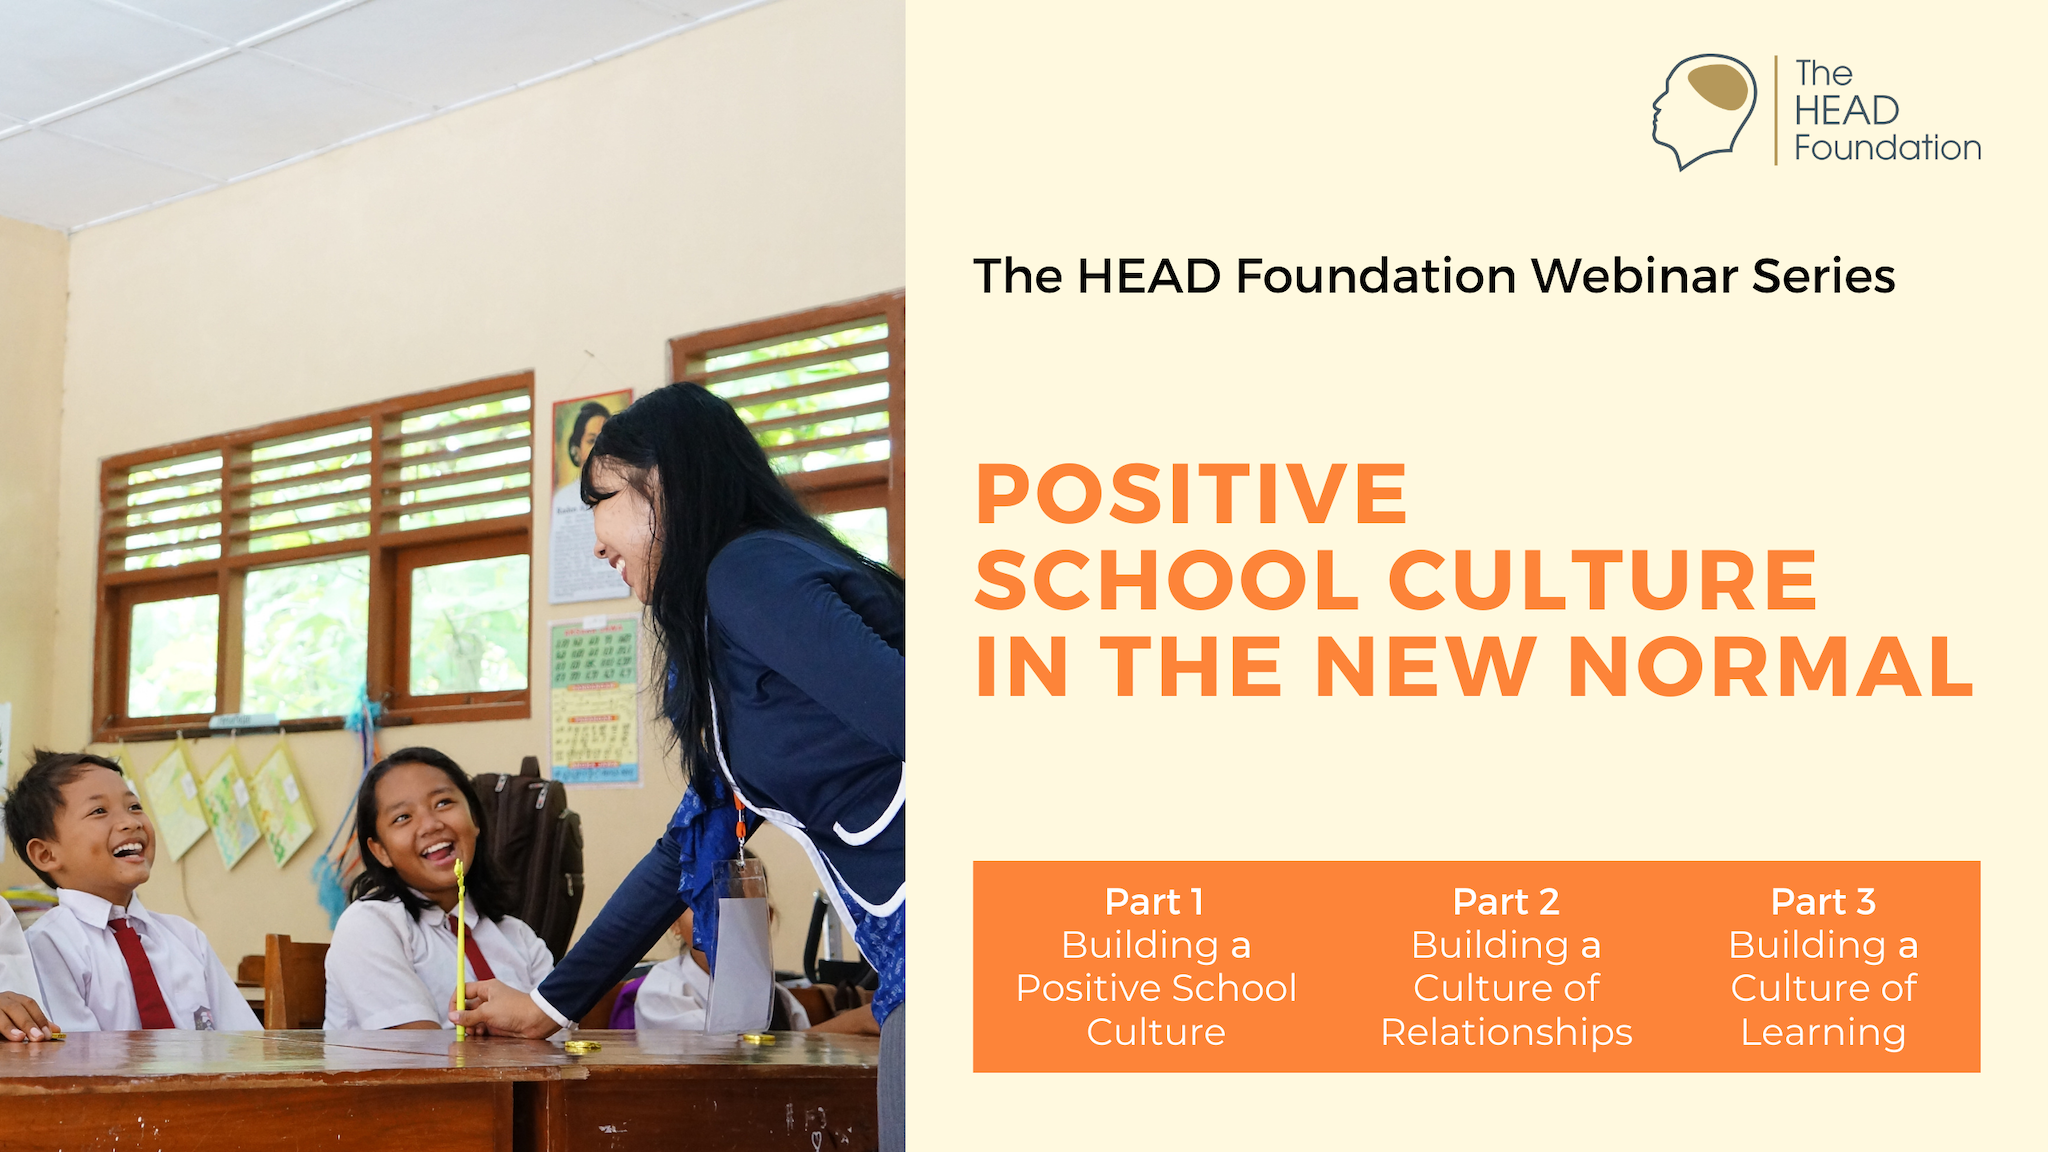 Making HEADway 2 - Positive School Culture in the New Normal